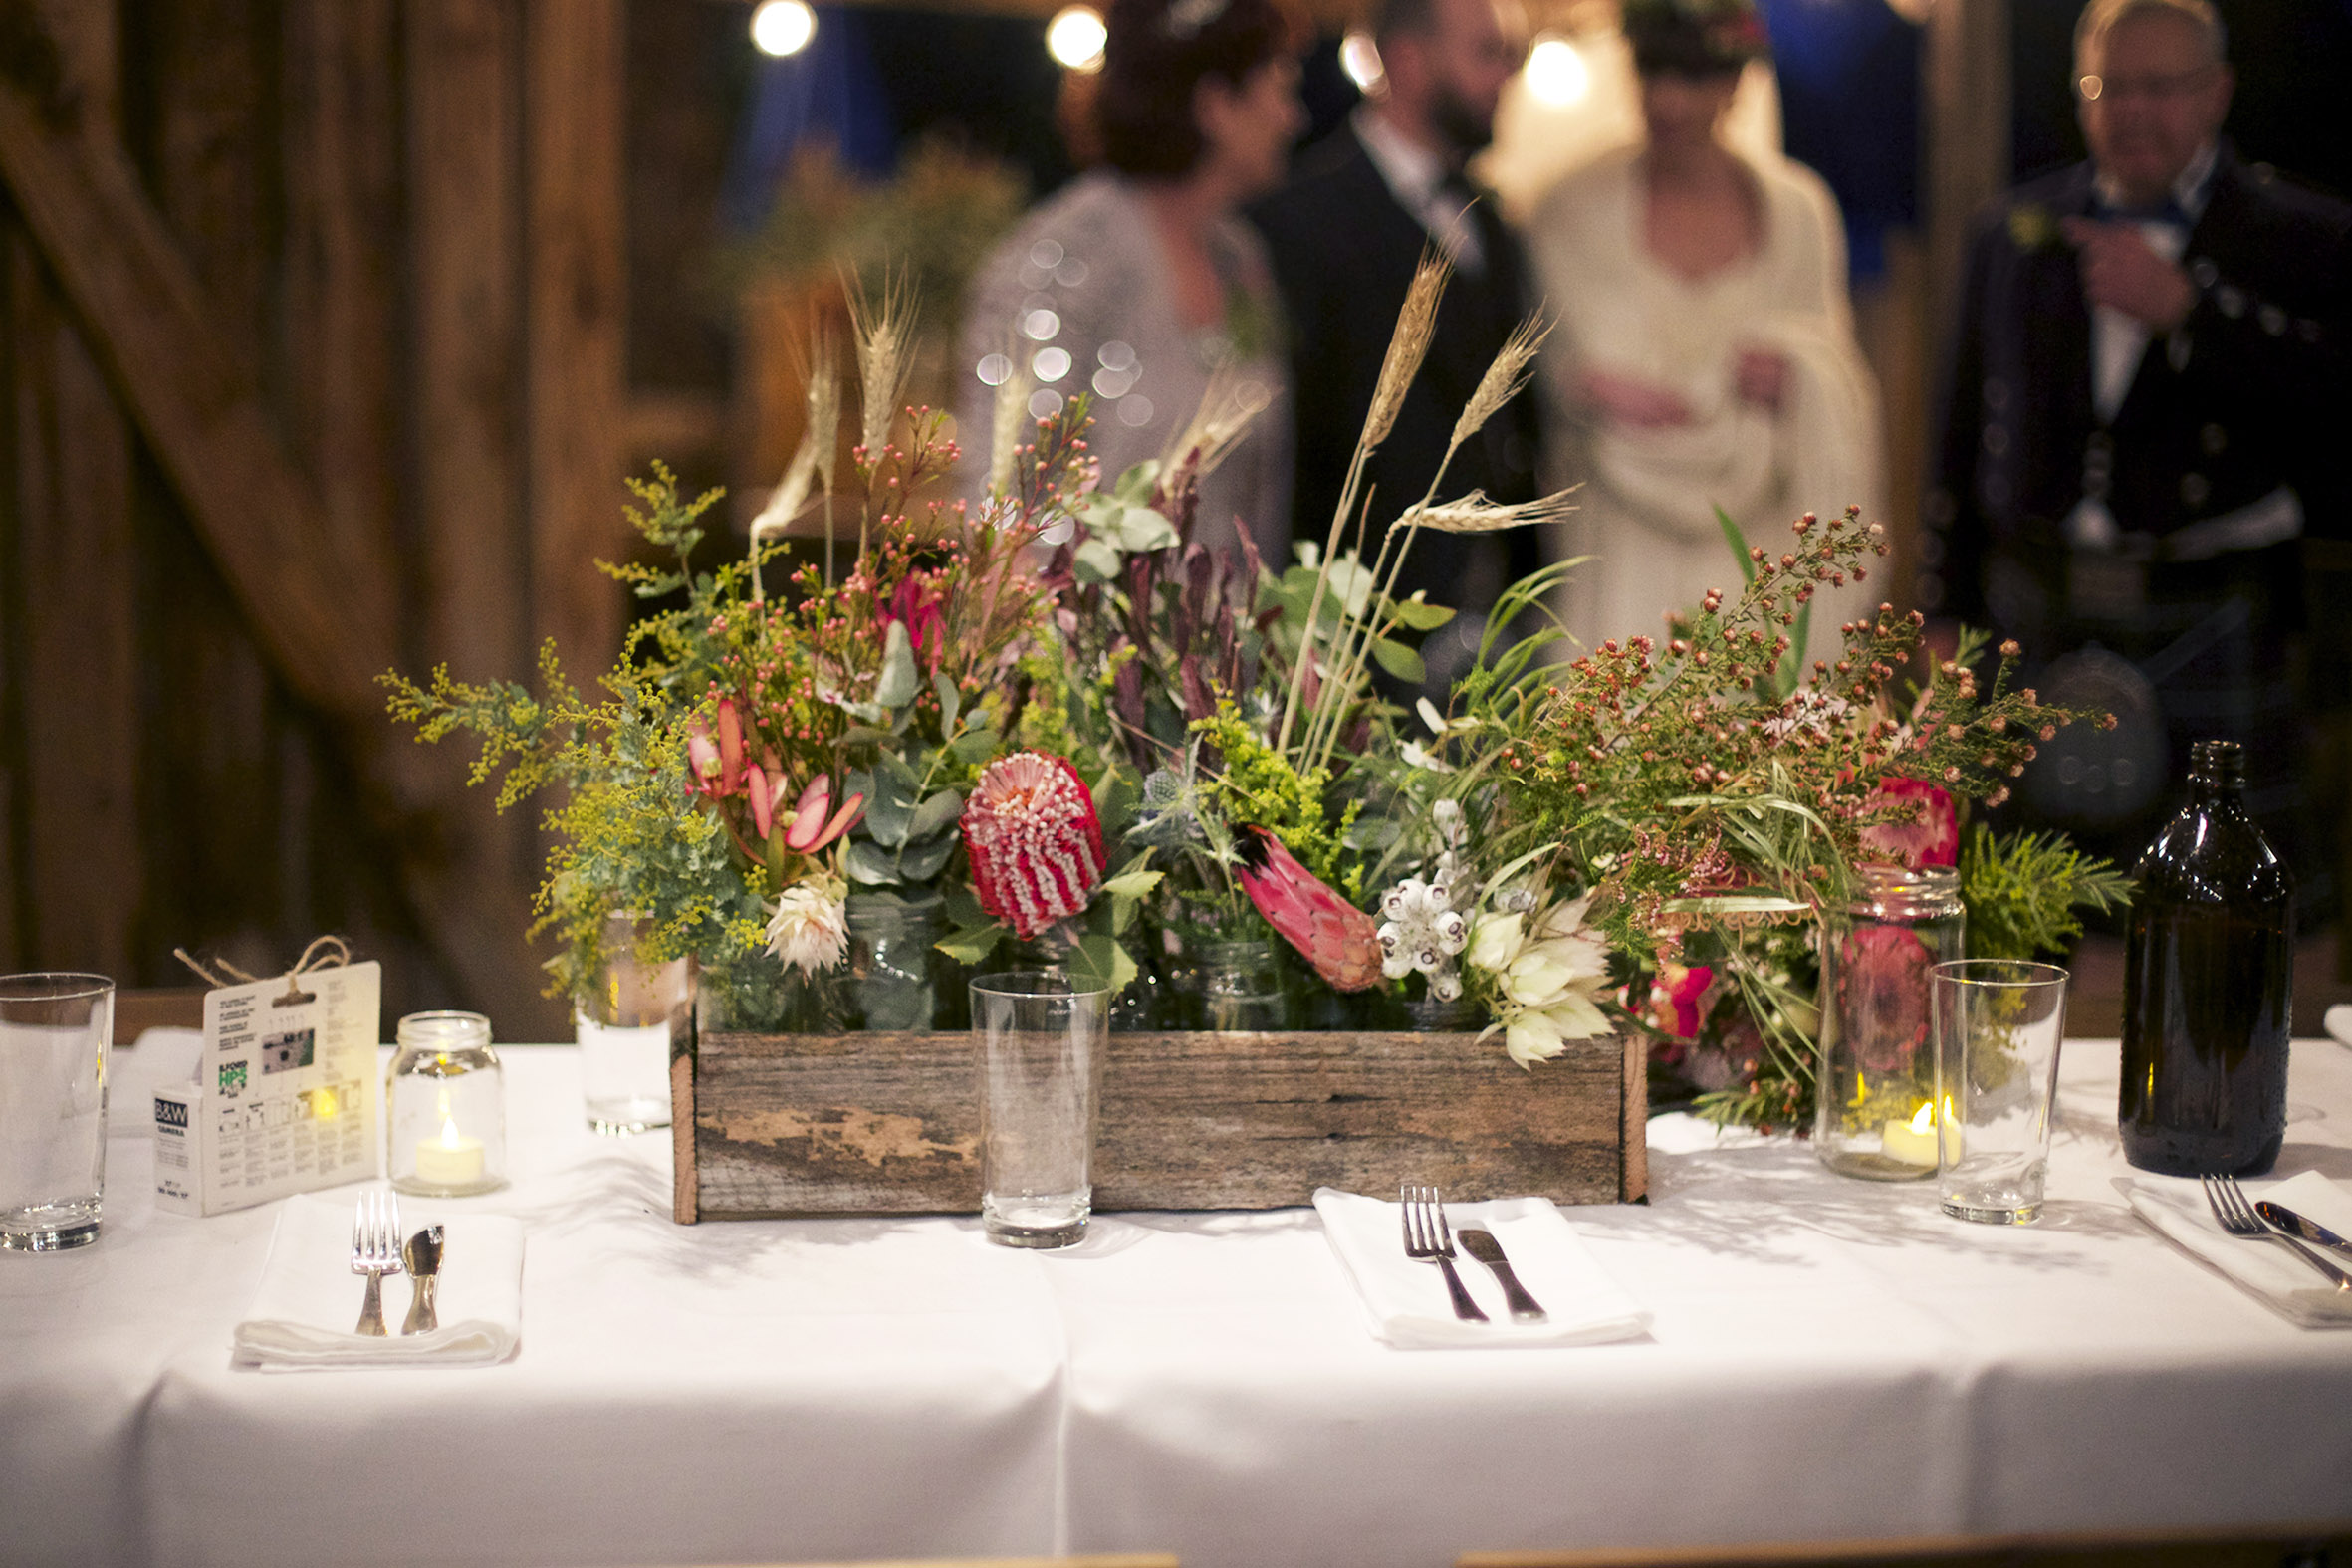 melbourne flowers wedding 2.jpg